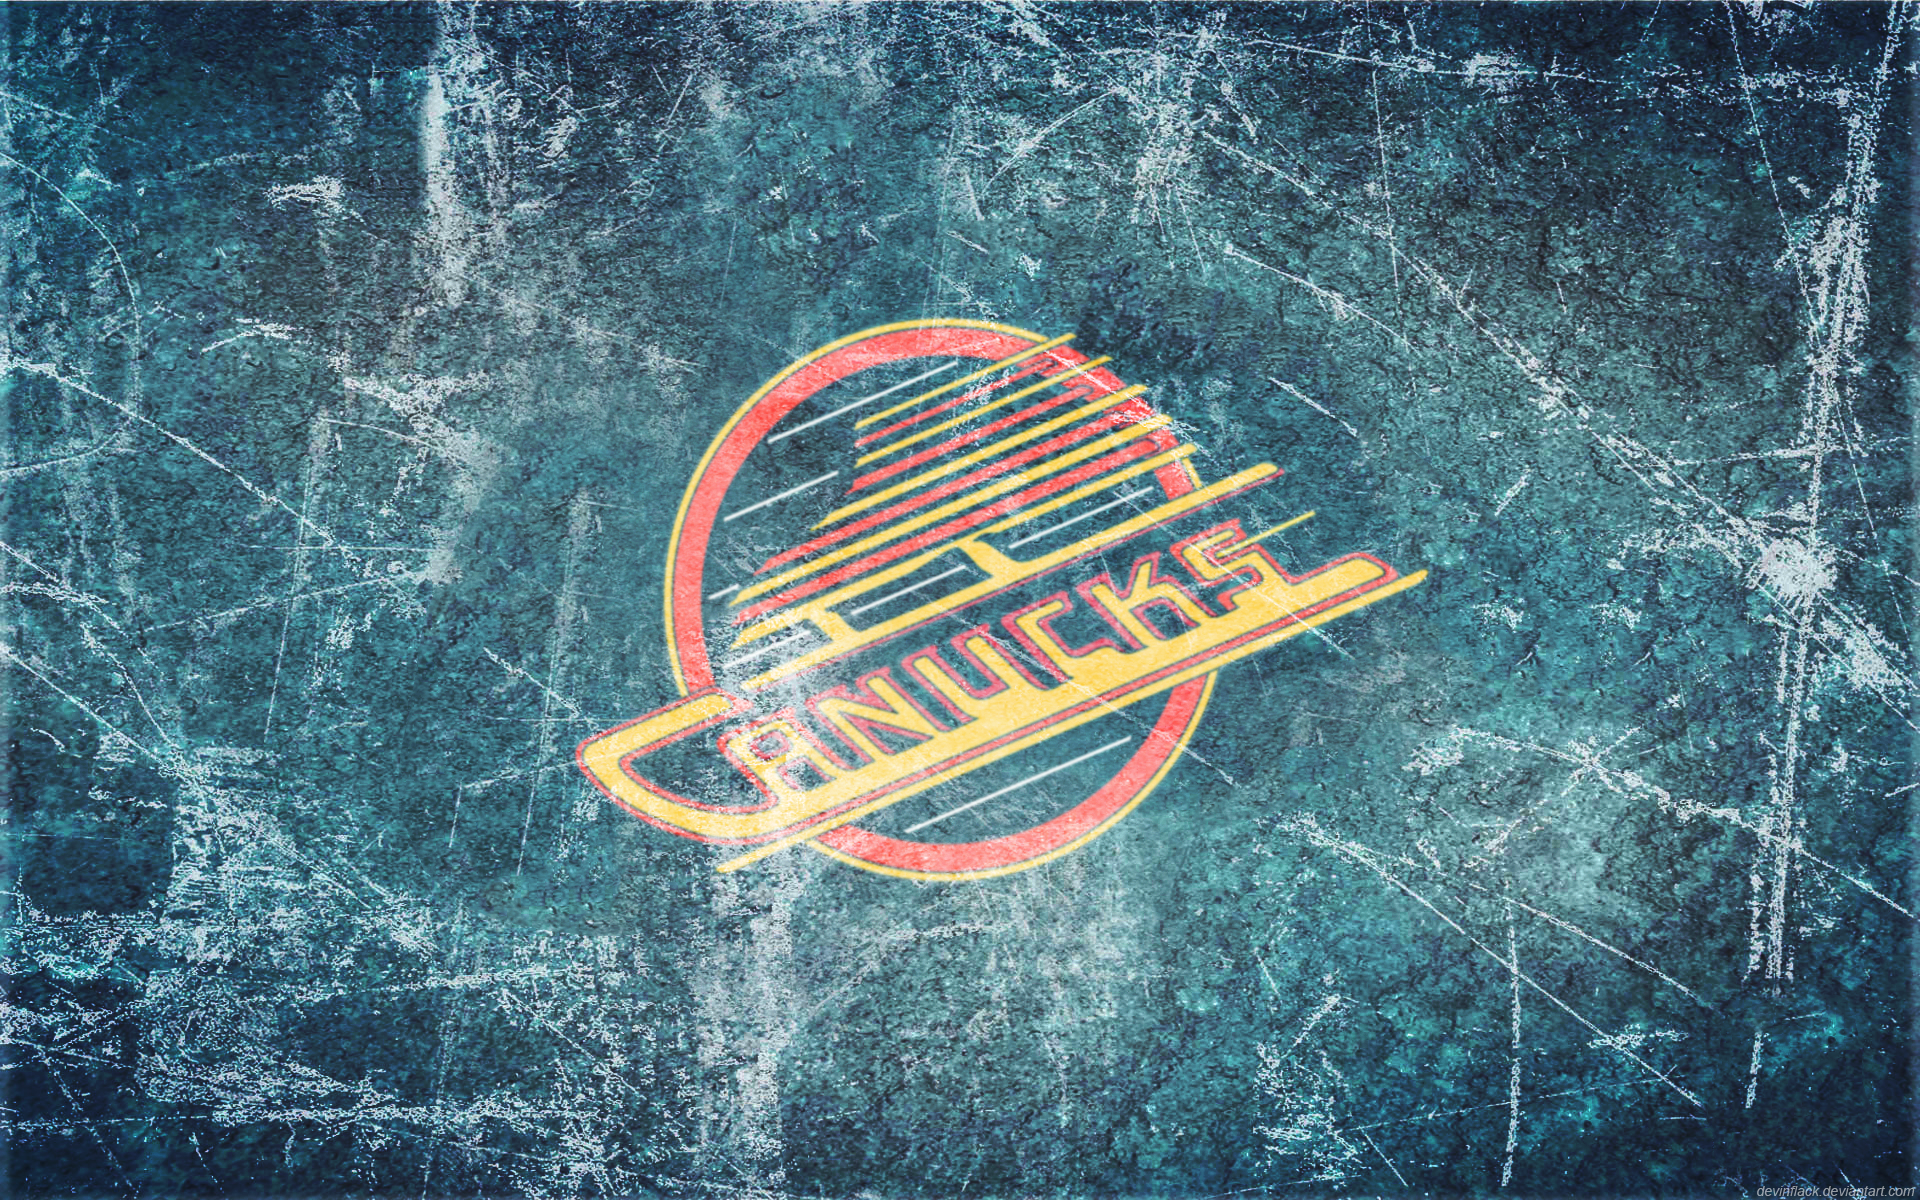 Canucks Vintage Ice Wallpaper by DevinFlack 1920x1200